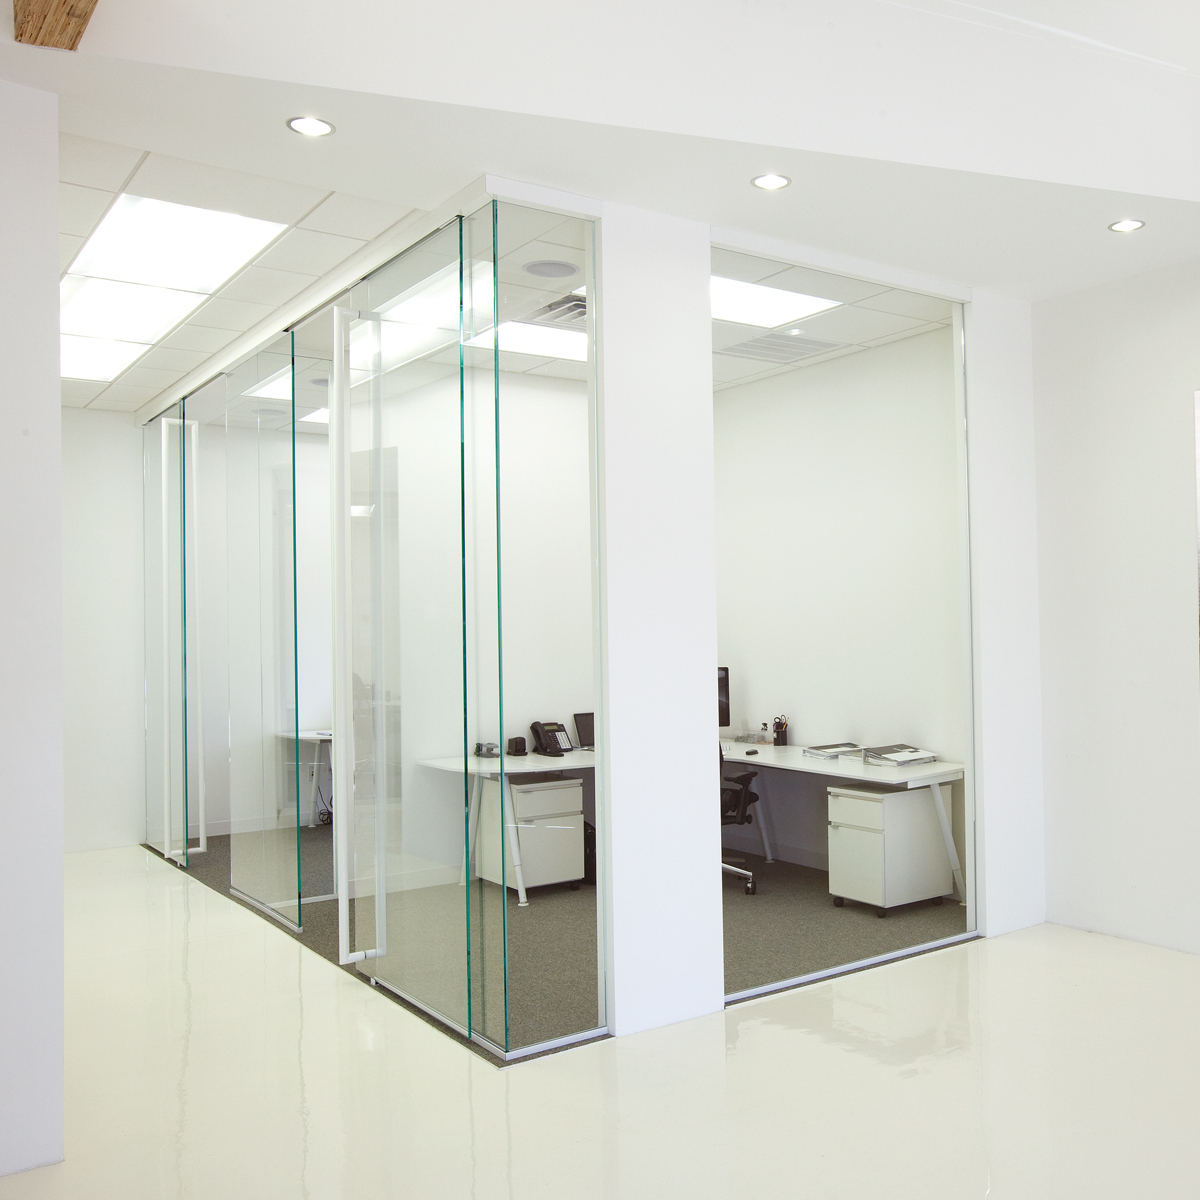 Dormakaba Interior Glass Wall Systems Transparency And